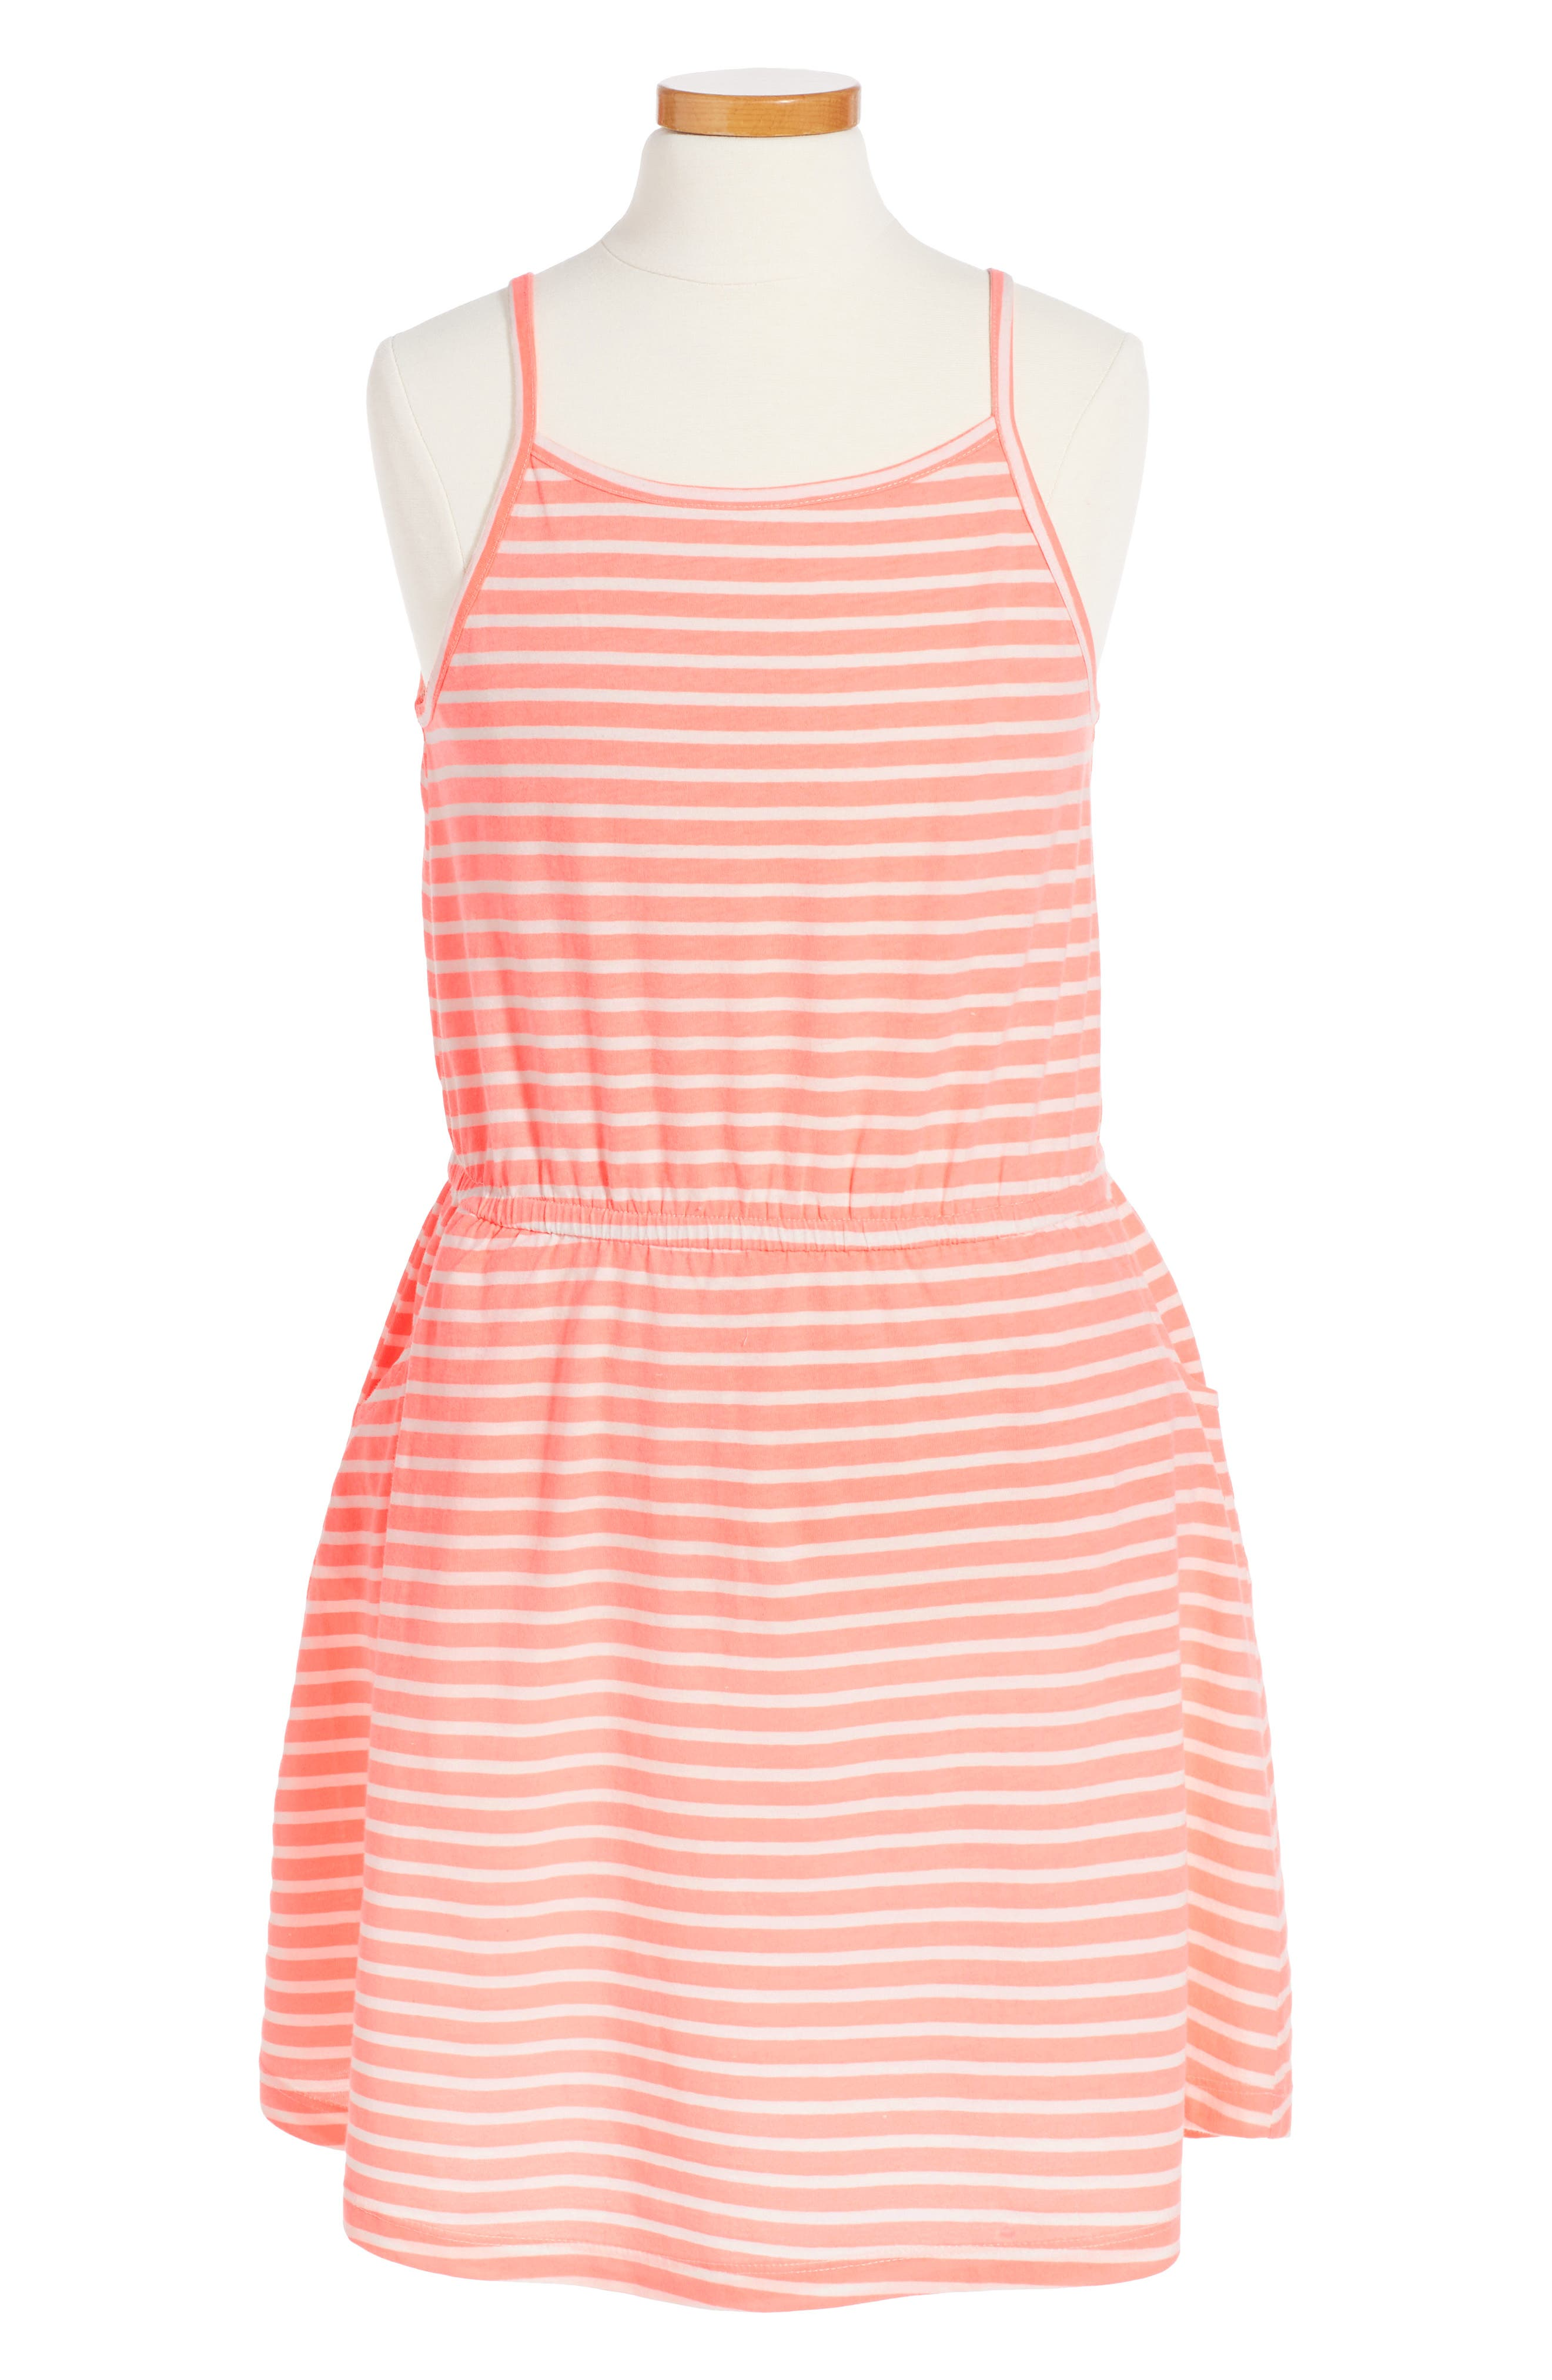 Peek Jaden Stripe Dress (Toddler Girls, Little Girls & Big Girls)